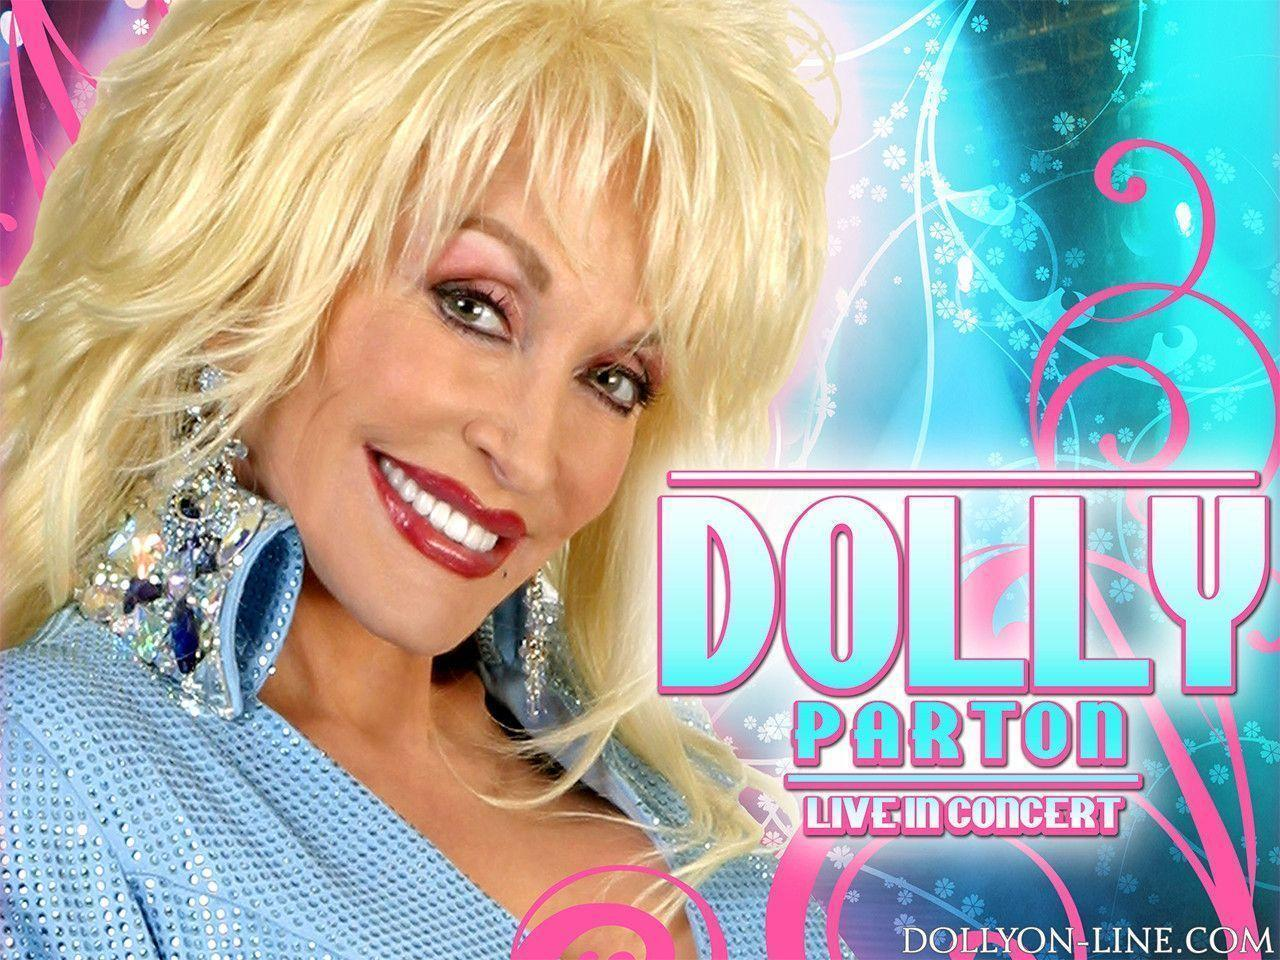 Dolly Parton - Dolly Parton Wallpaper (10888463) - Fanpop